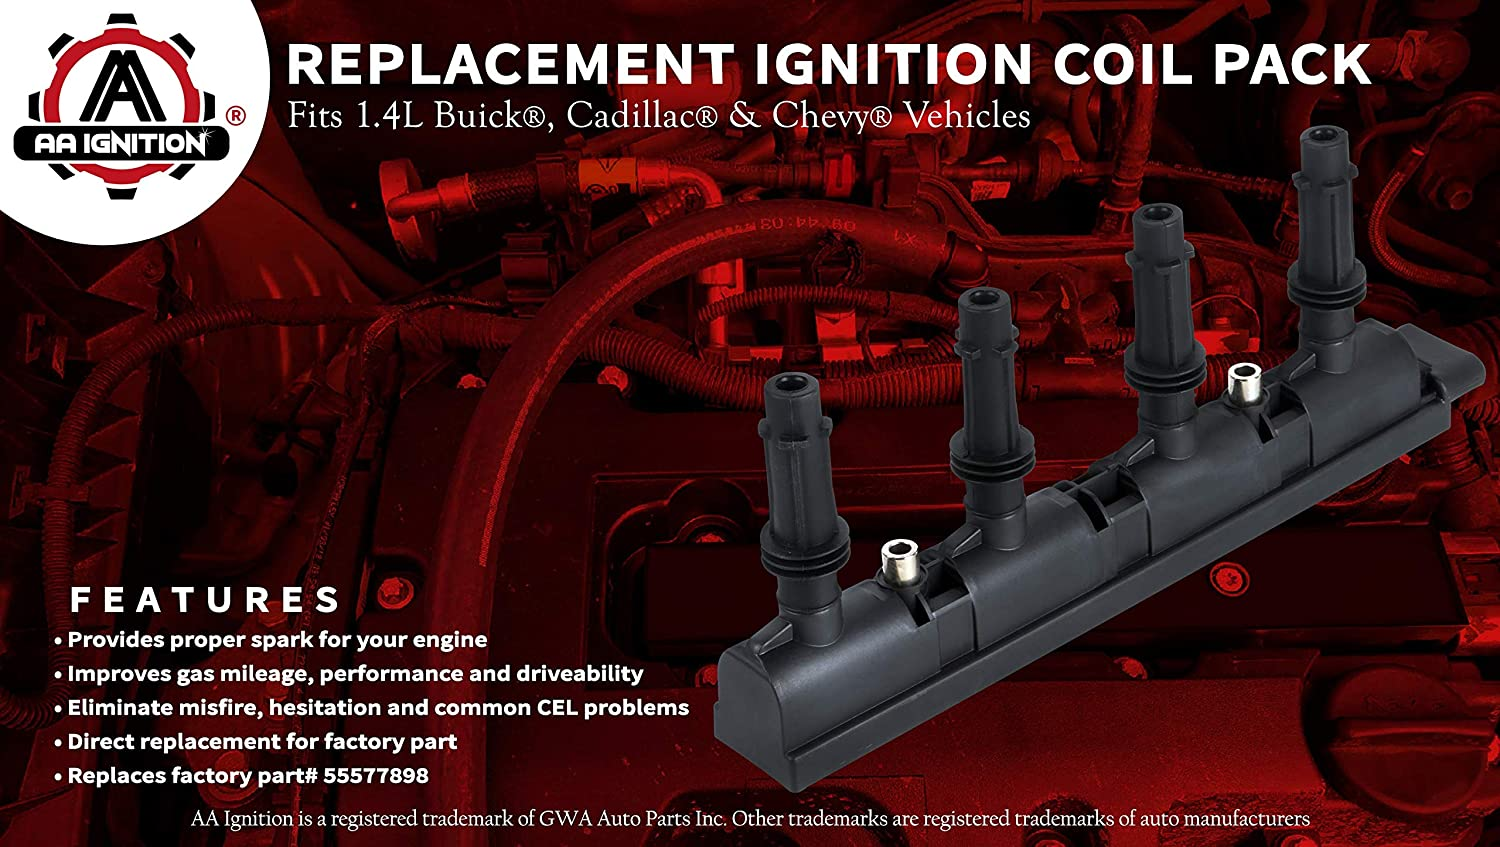 Trax Cruze Limited Volt 55579072 Chevrolet Cruze UF669 Cadillac ELR 55577898 Sonic Replaces D521C Ignition Coil Pack 25198623 C1810 Turbo and Electric Vehicles Fits 1.4L Buick Encore